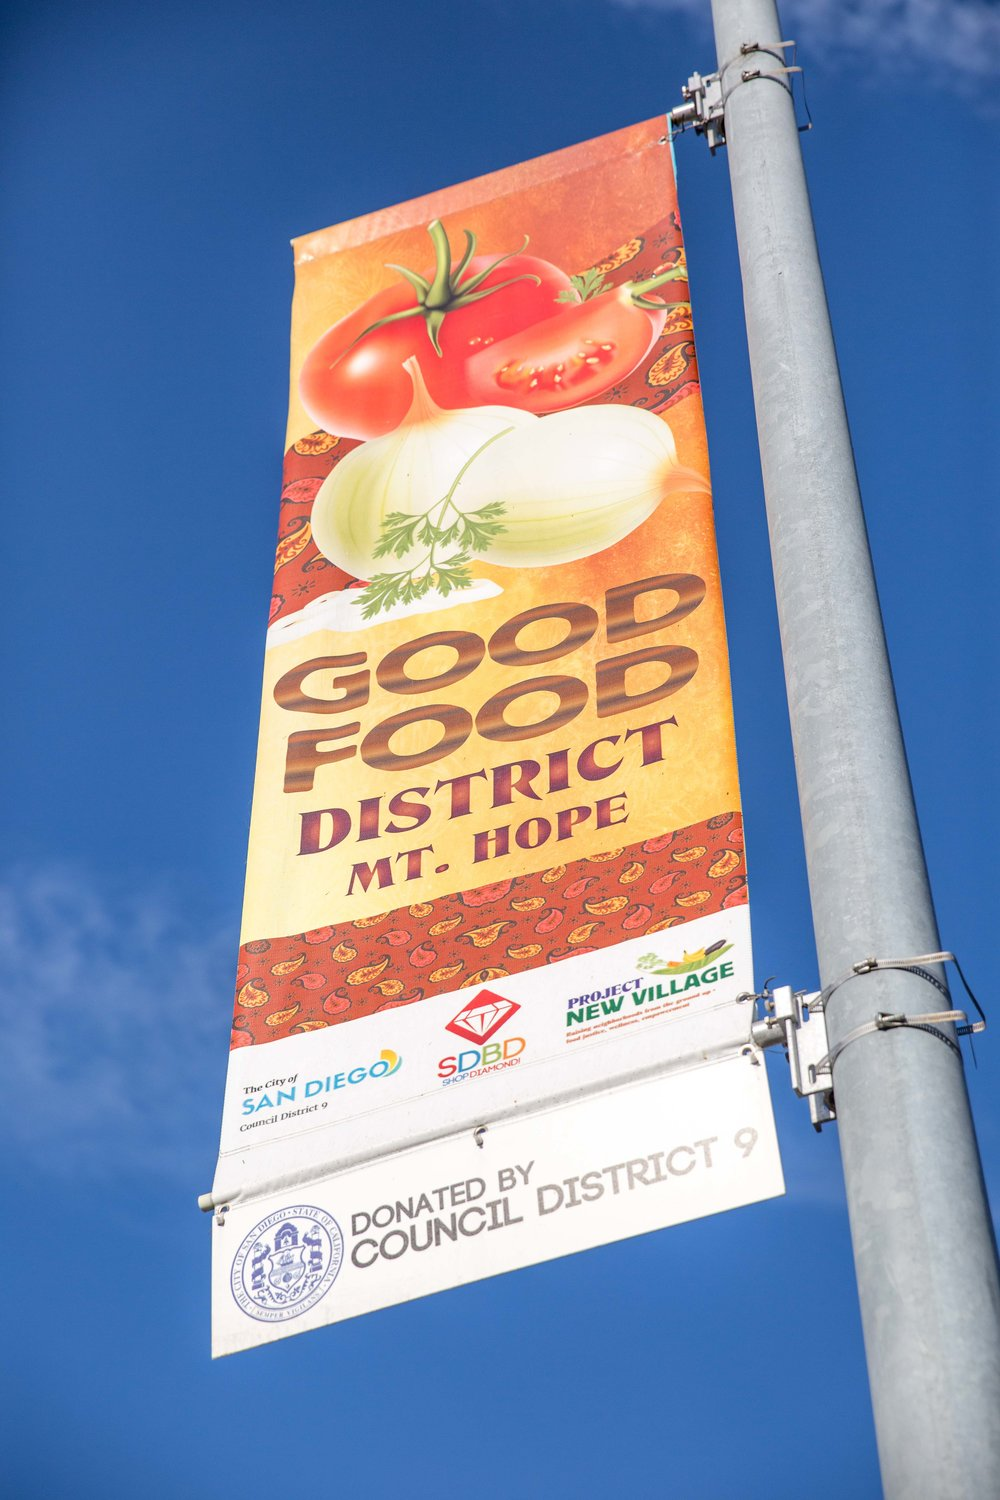 project new village's Good Food District inspires collective agency and promotes food security at a neighborhood level. Urban agriculture in the Southeast San Diego community of Mt. Hope is helping increase access to healthy food.